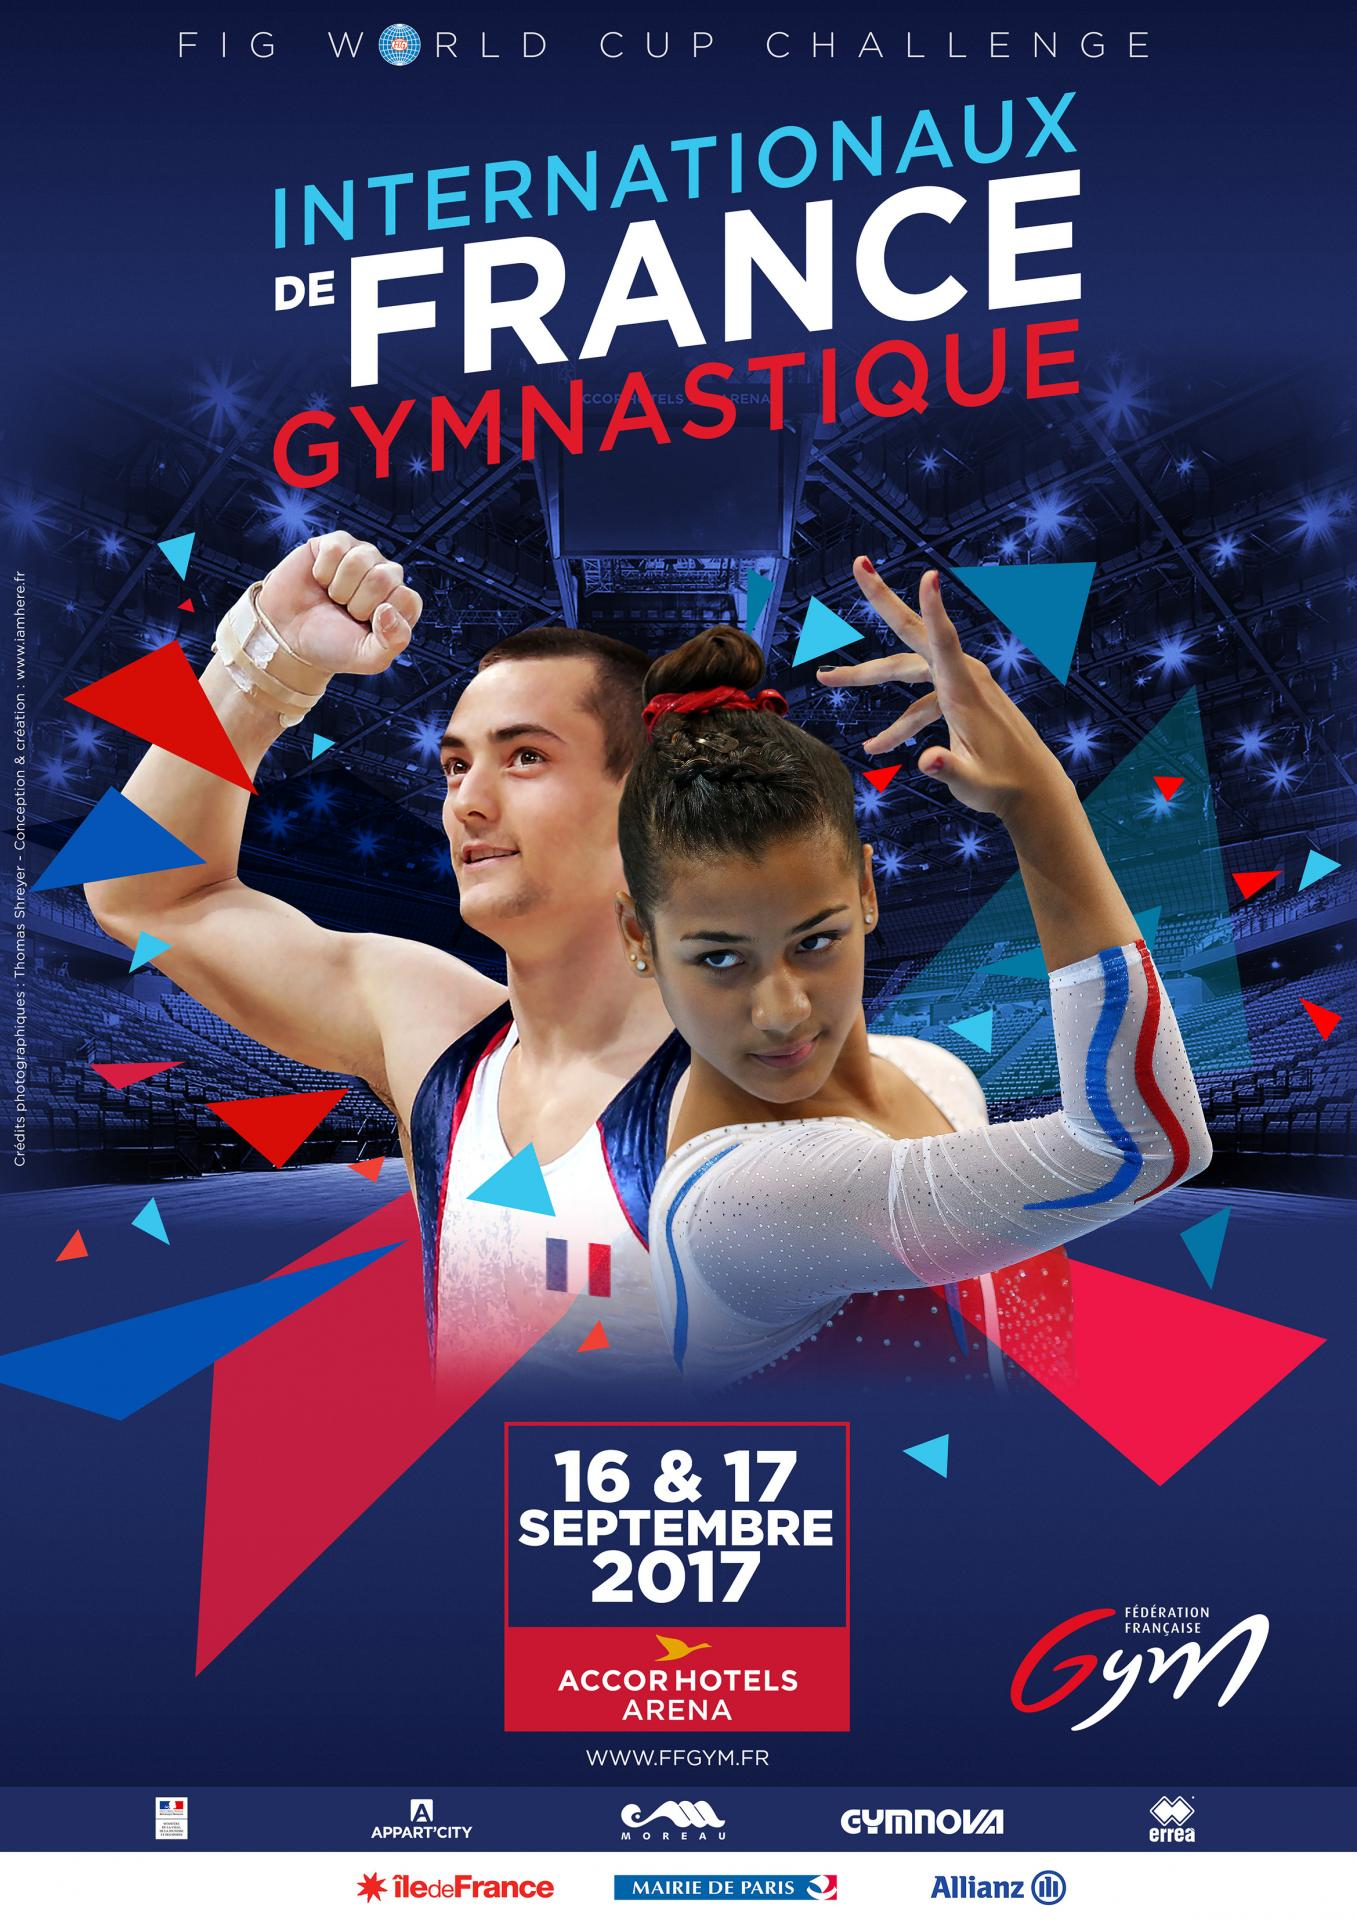 Internationaux de France, Gym